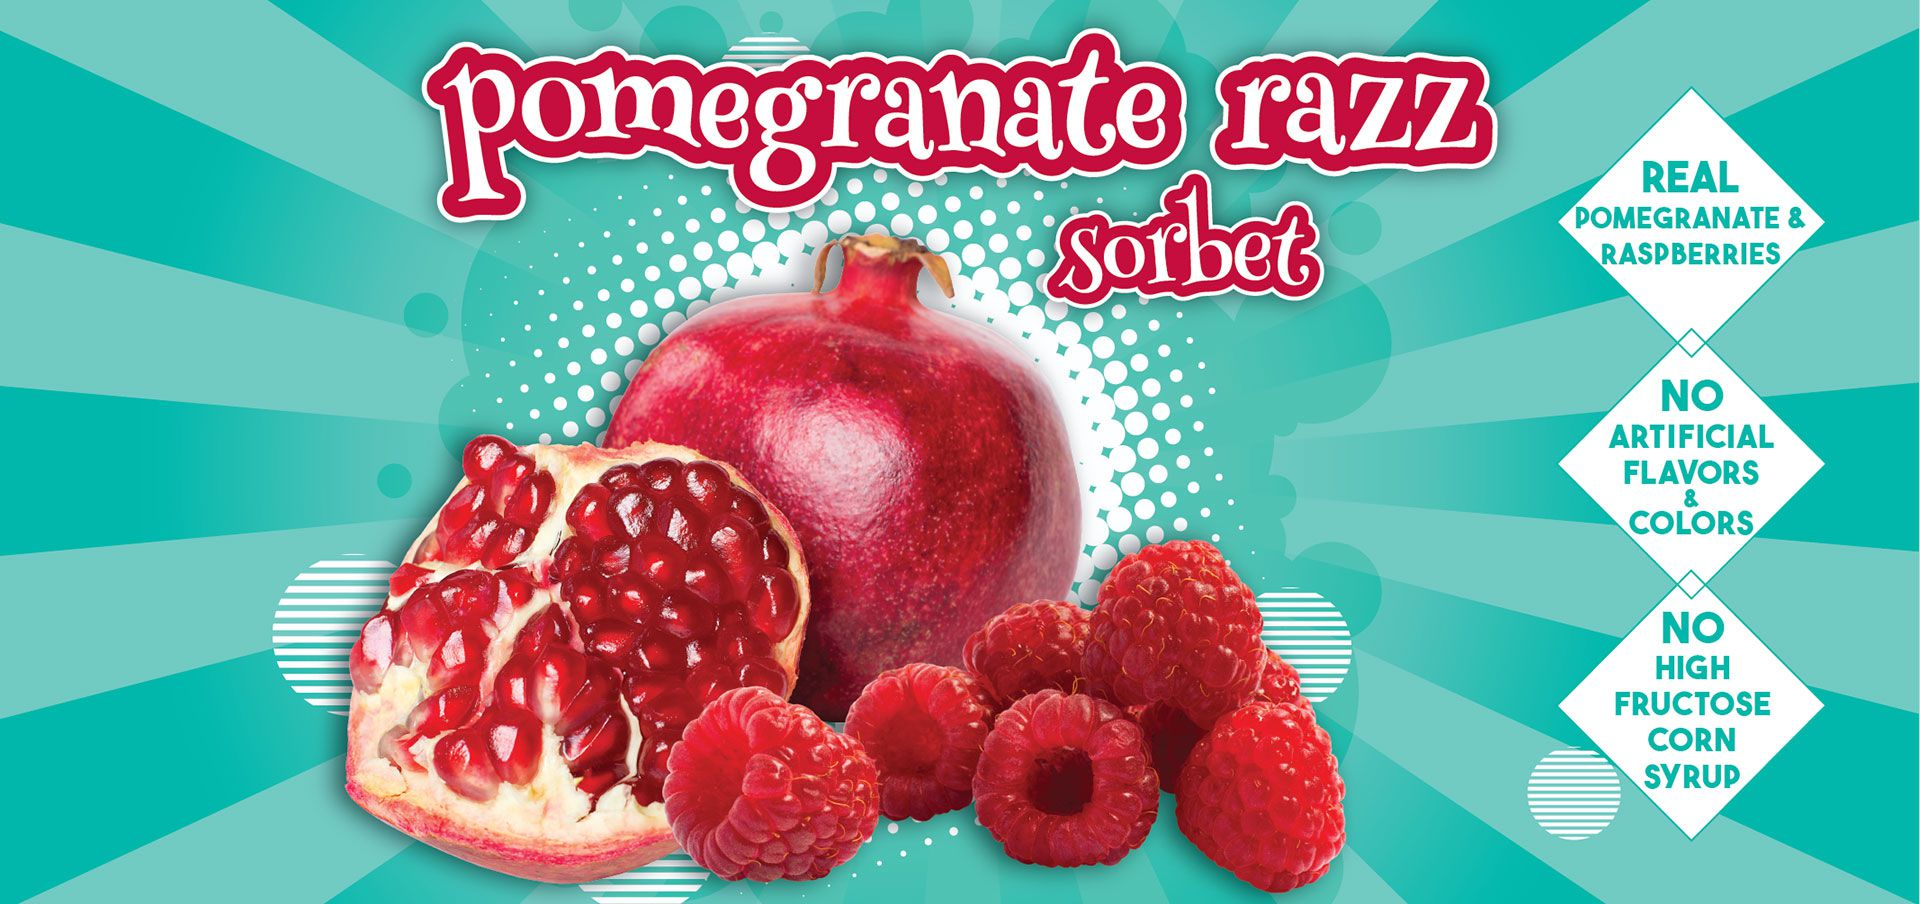 pomegranate razz sorbet label image